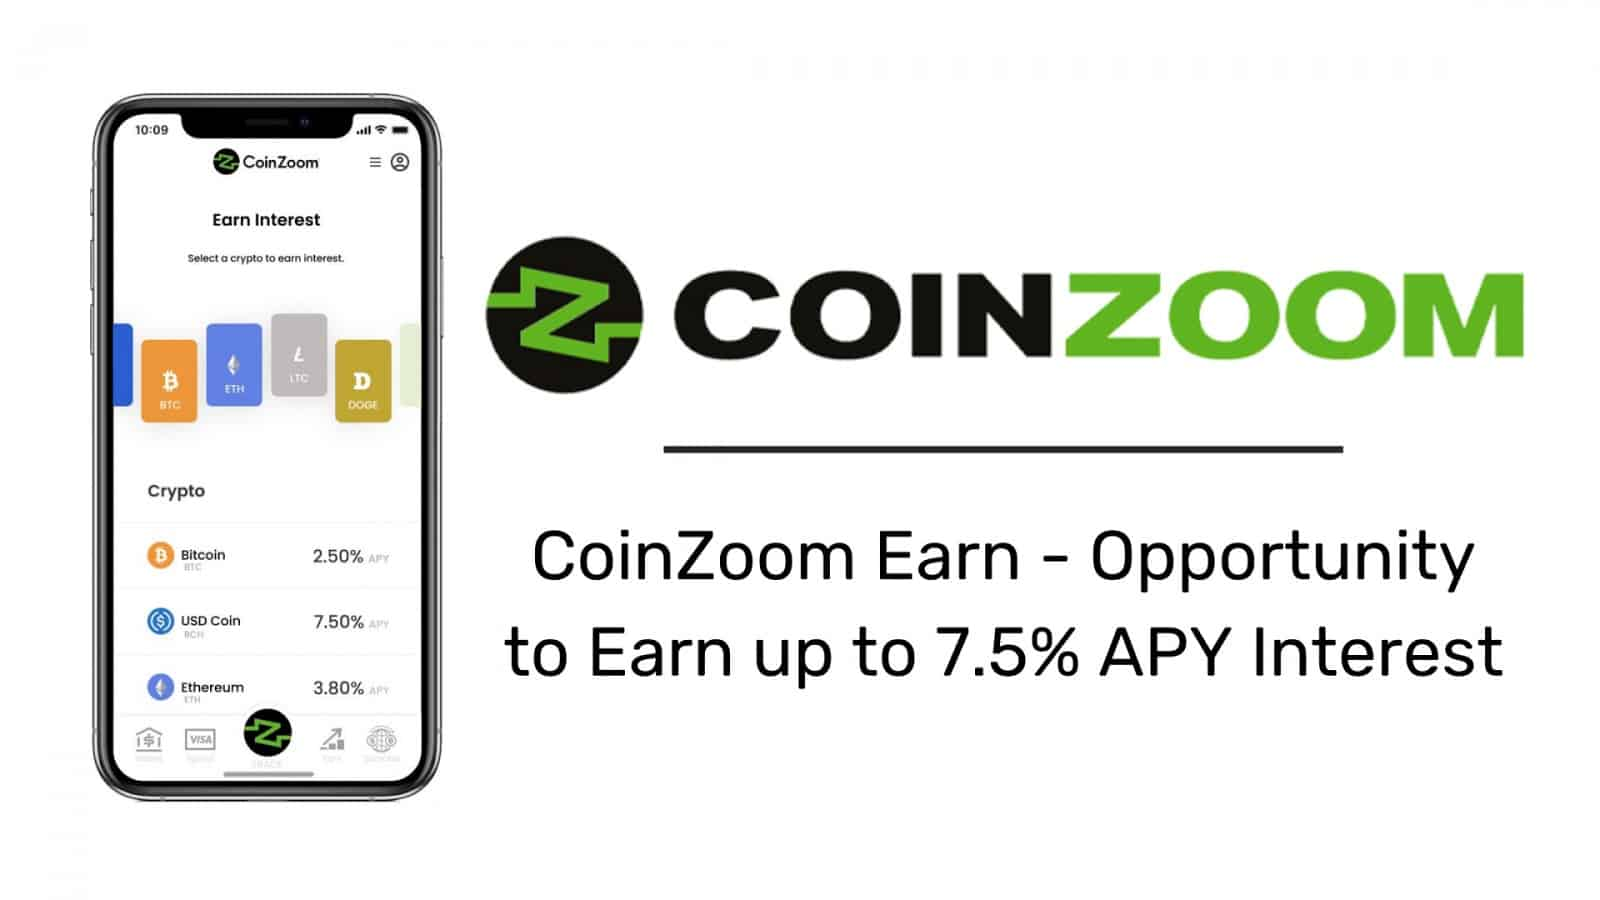 CoinZoom Launching CoinZoom Earn With up to 7.5% APY Interest on Cryptocurrencies and USD Holdings